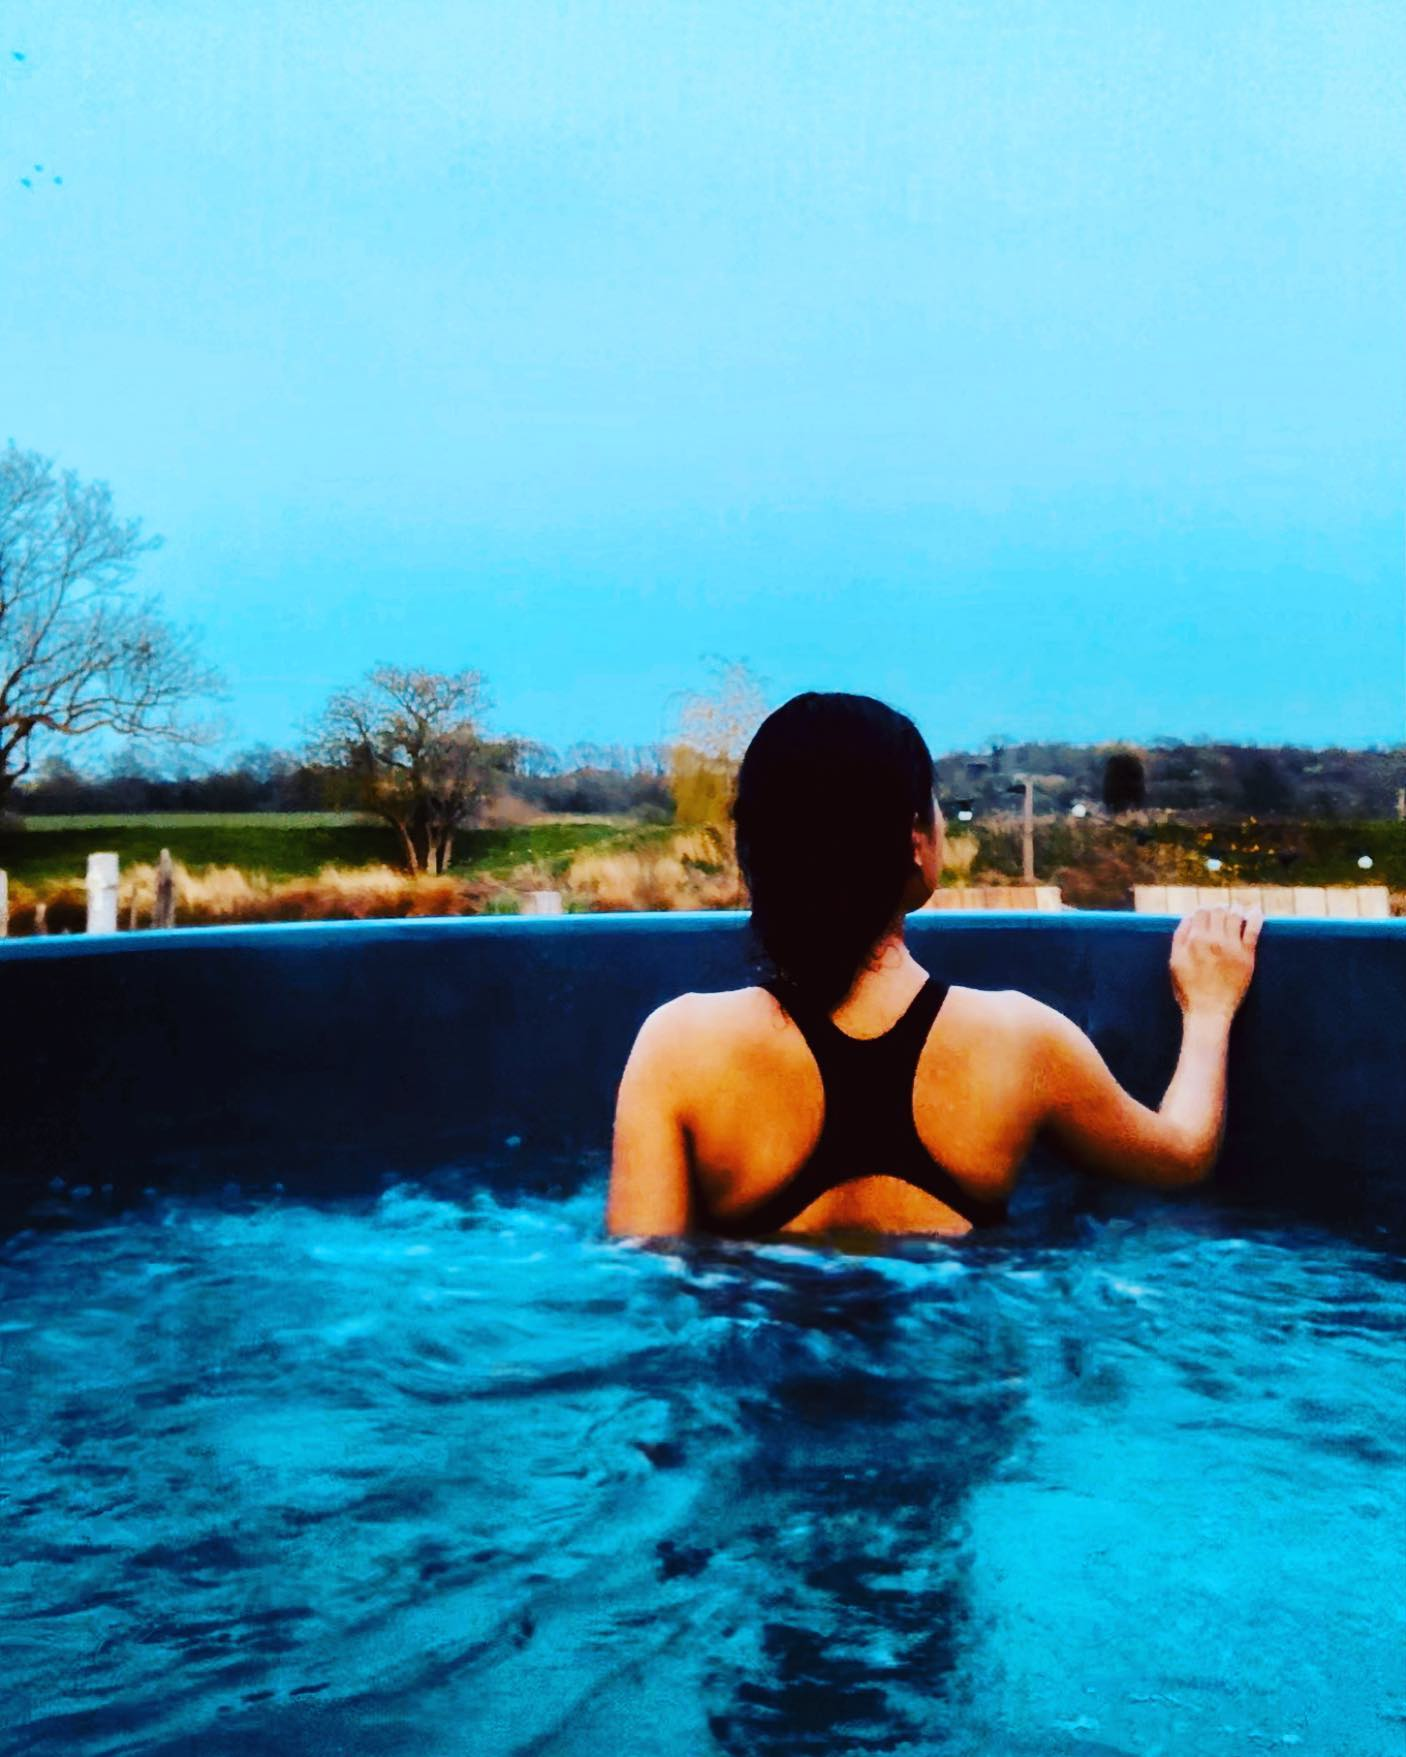 Half warm (35 degrees), Half freezing (10 degrees) 🔥🥶.. But never mind ✨.. Coz' what's better than soaking in the wood-fired Hot Tub while staring at this peaceful view in the middle of nowhere!! I can stay here forever! 🎑🎑🎑 #LiveLife #StaycationUK